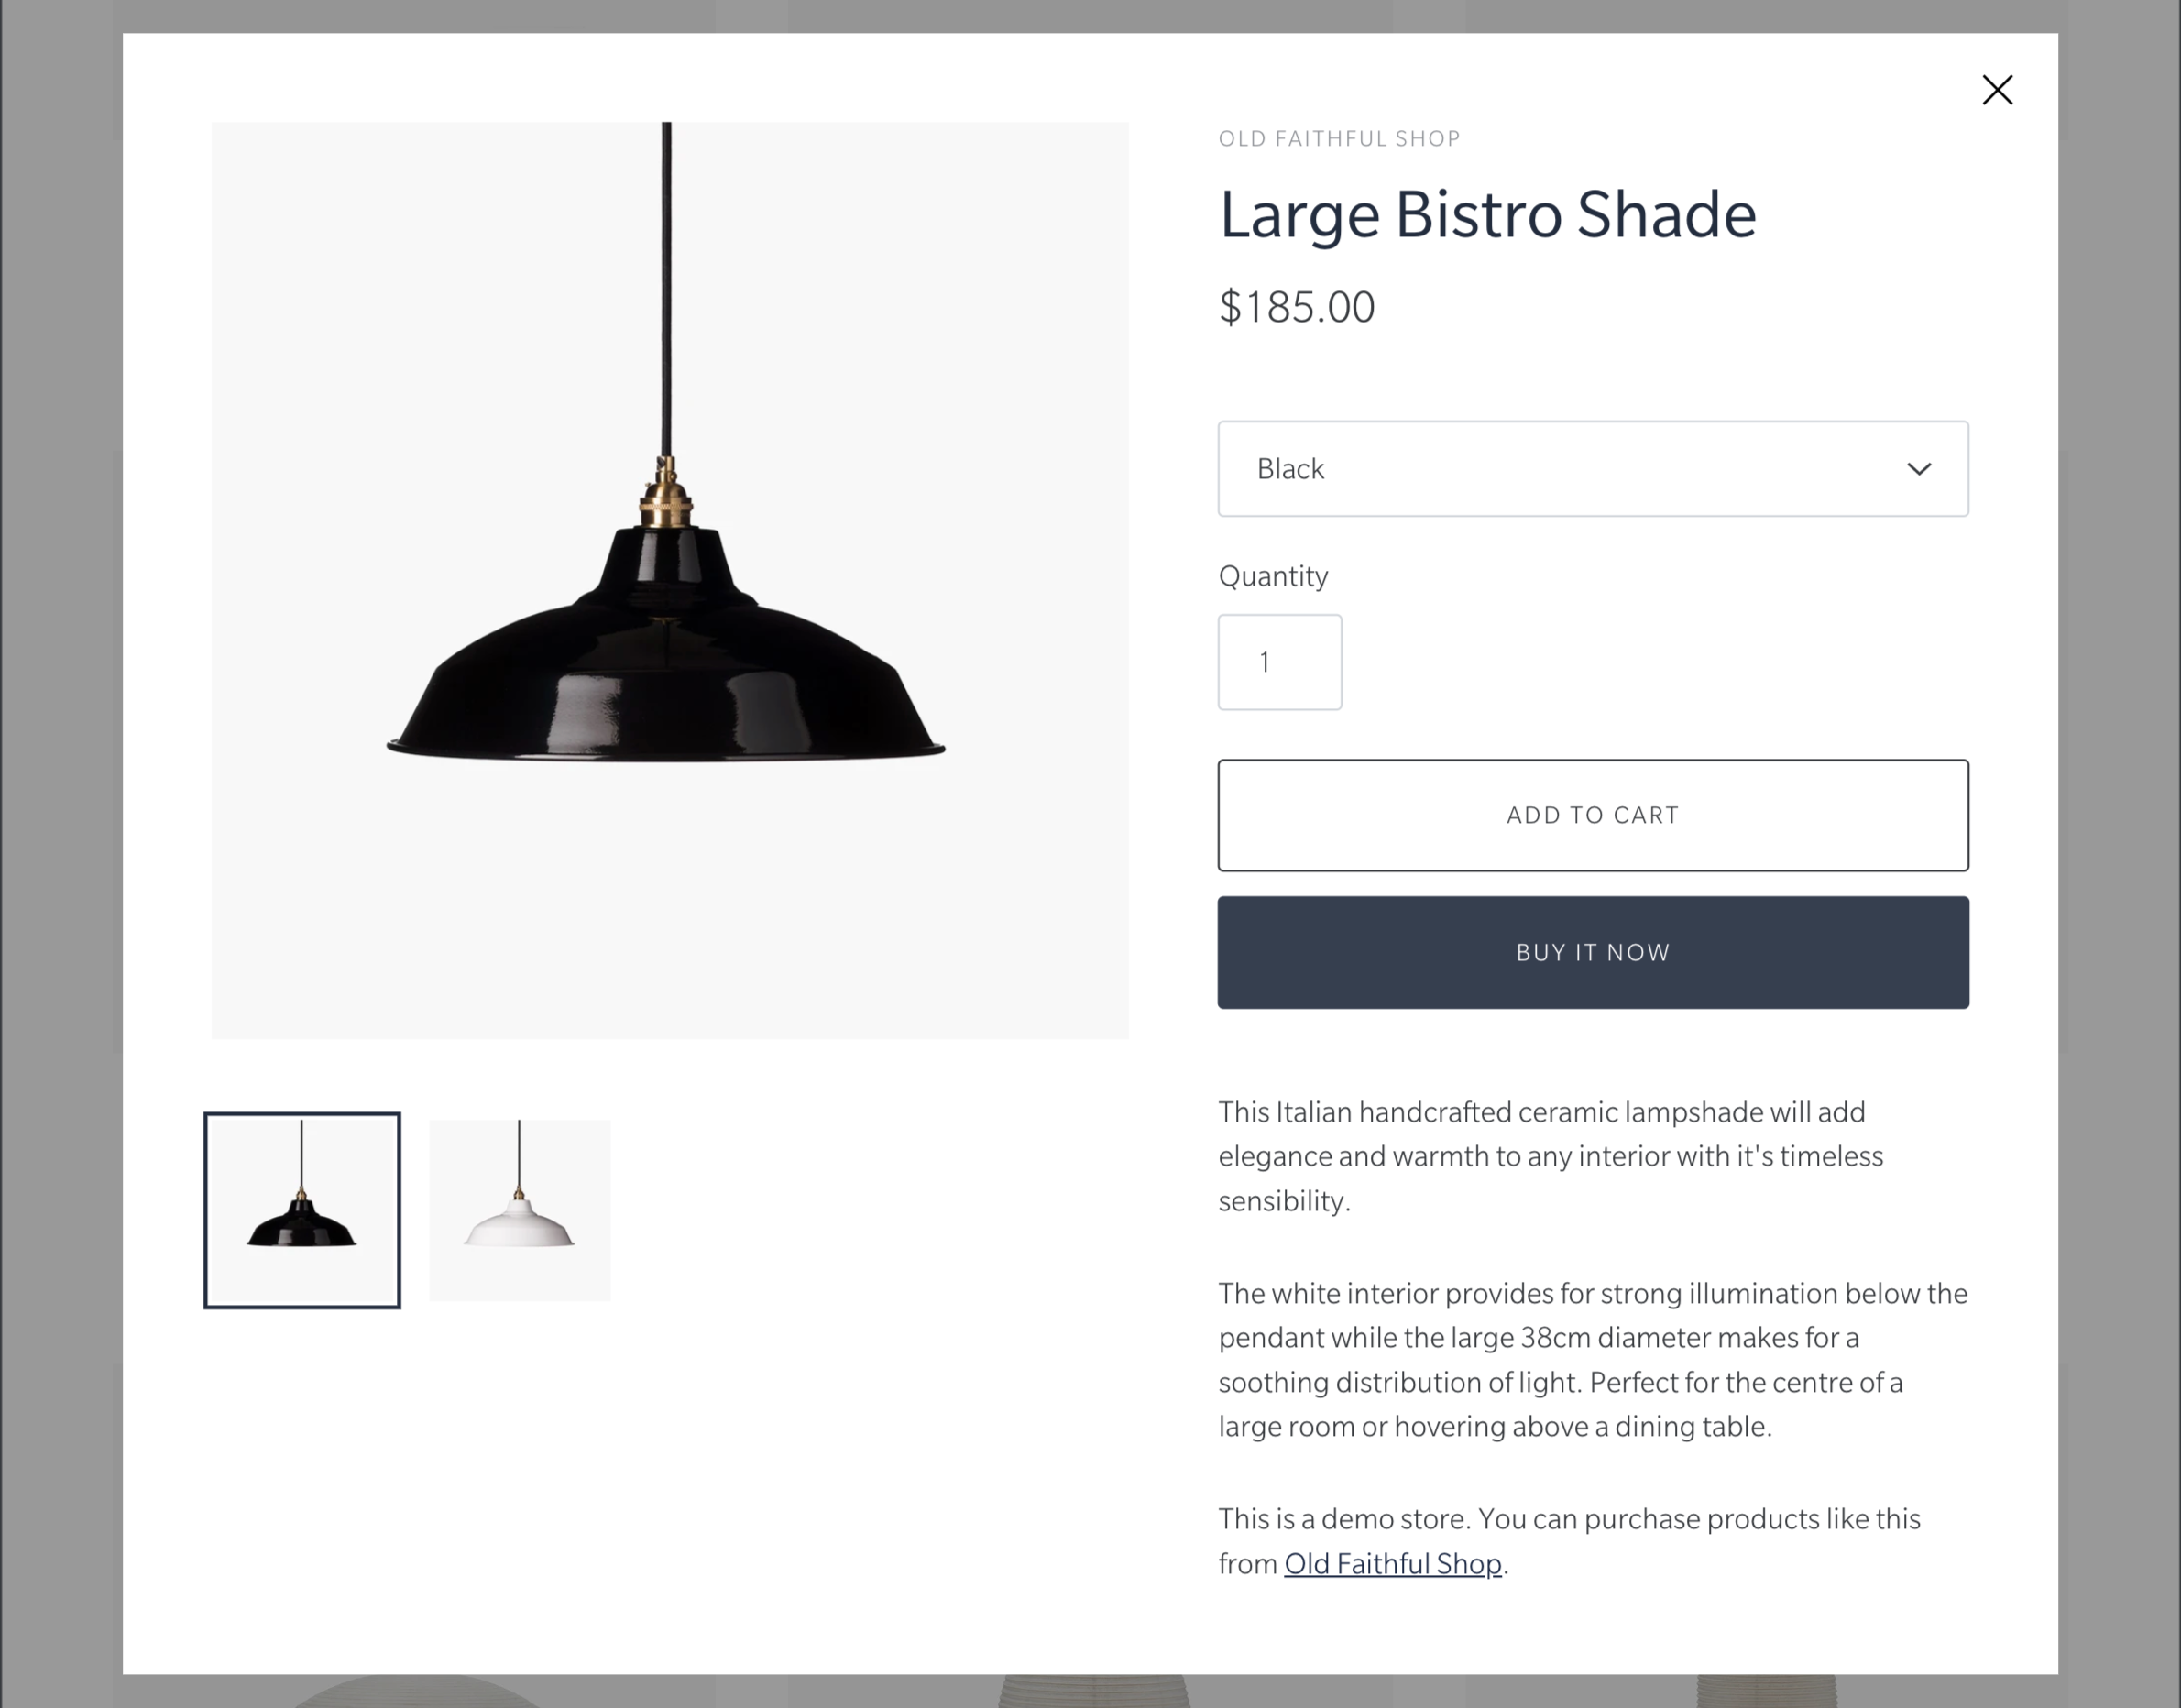 quickshop_modal_window_showing_light_shade_product.png